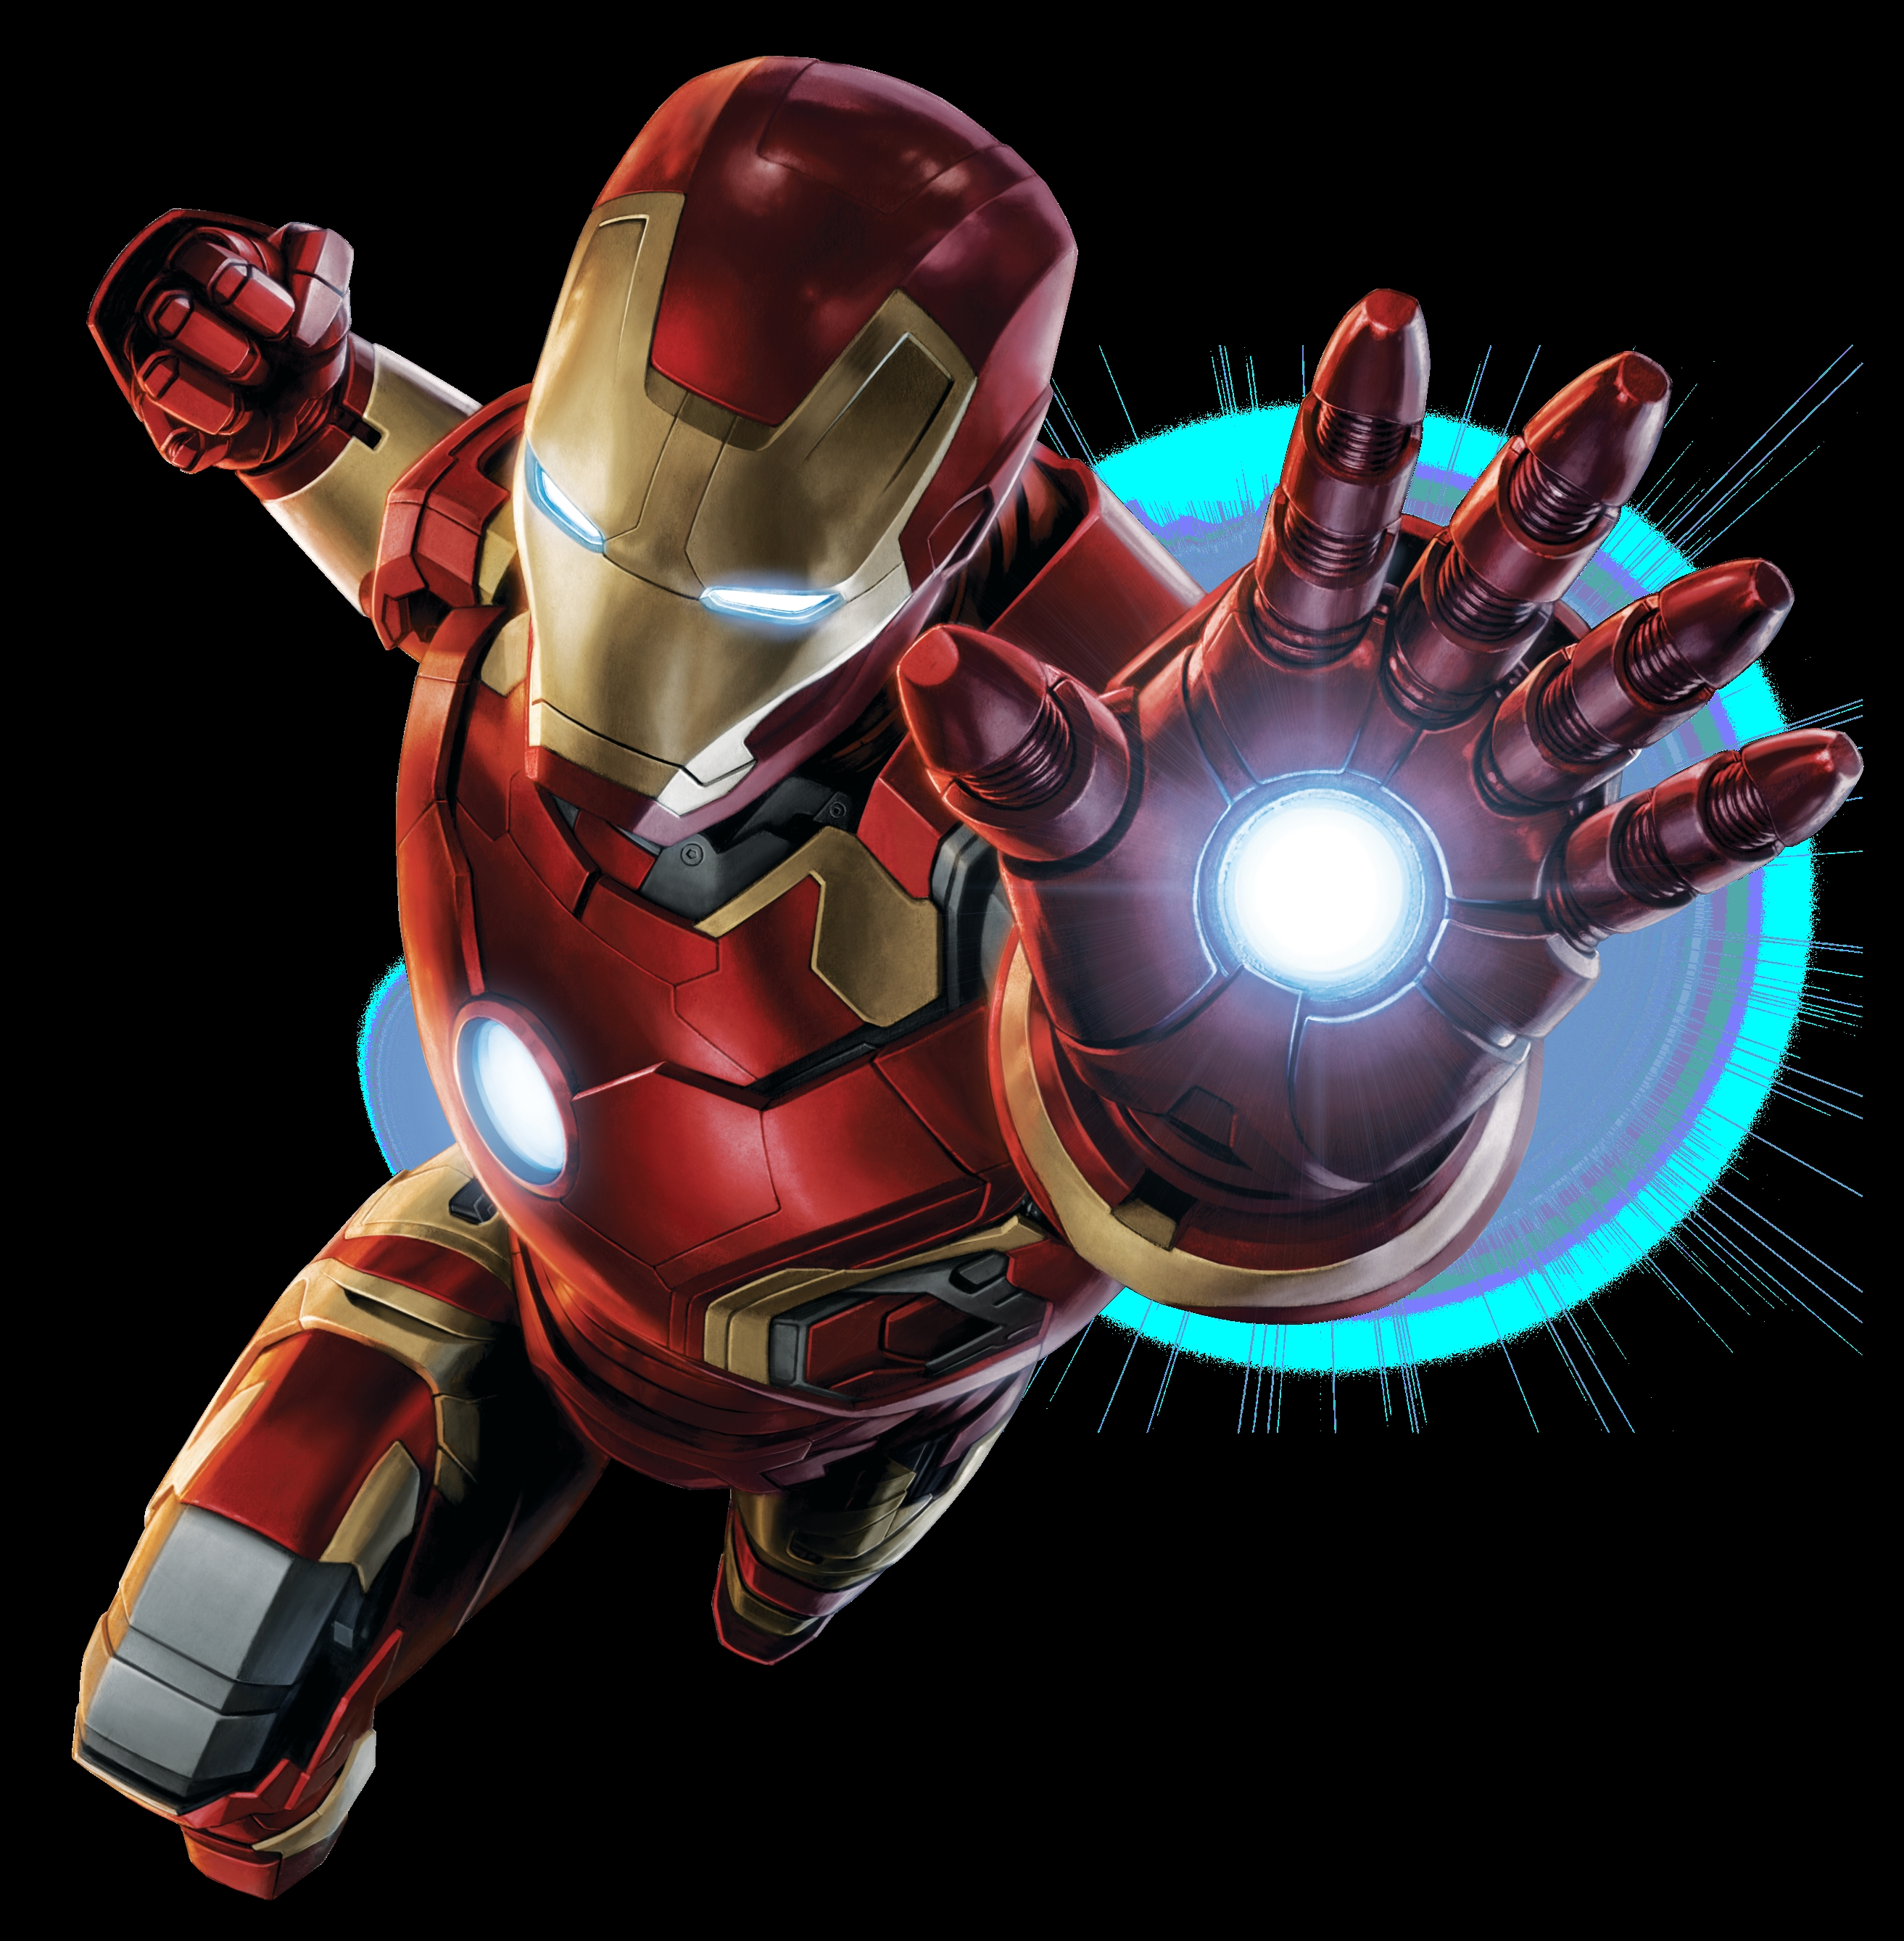 New Year Wallpapers 3d Iron Man 4 Hd Free Wallpaper Download